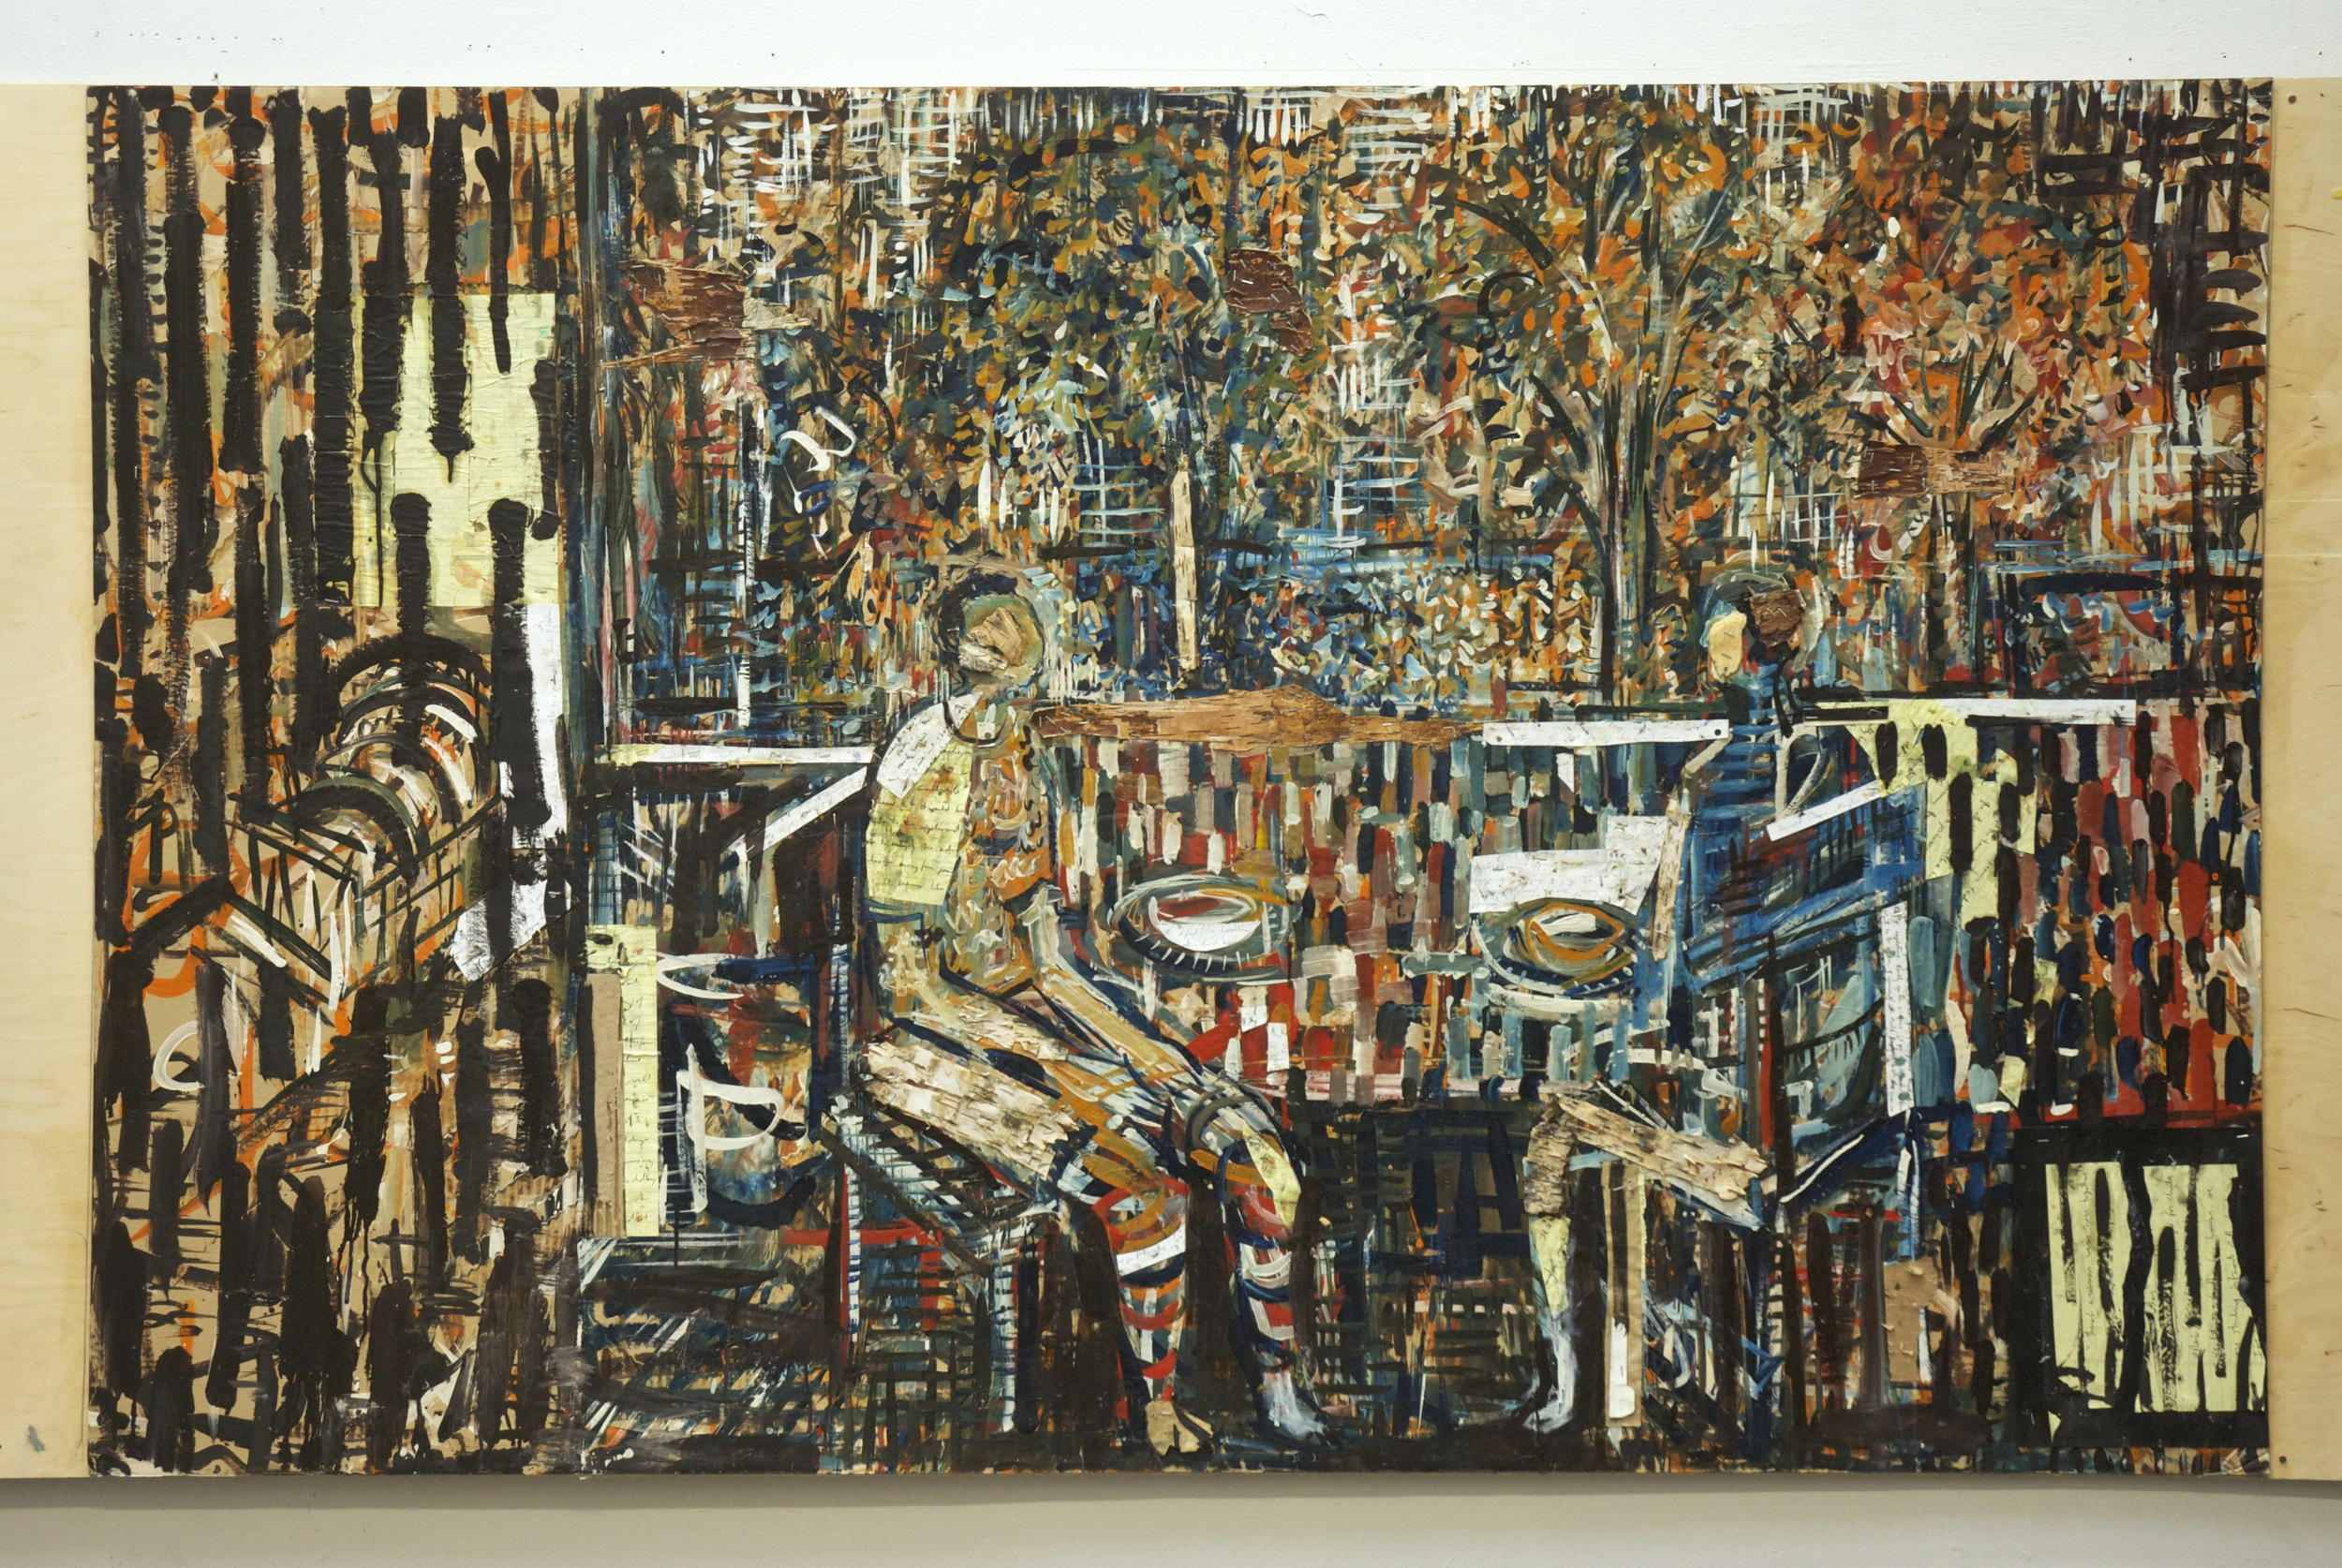 Lunch with Sarah , 2014, oil, bark and paper on cardboard on panel, 48x96 inches